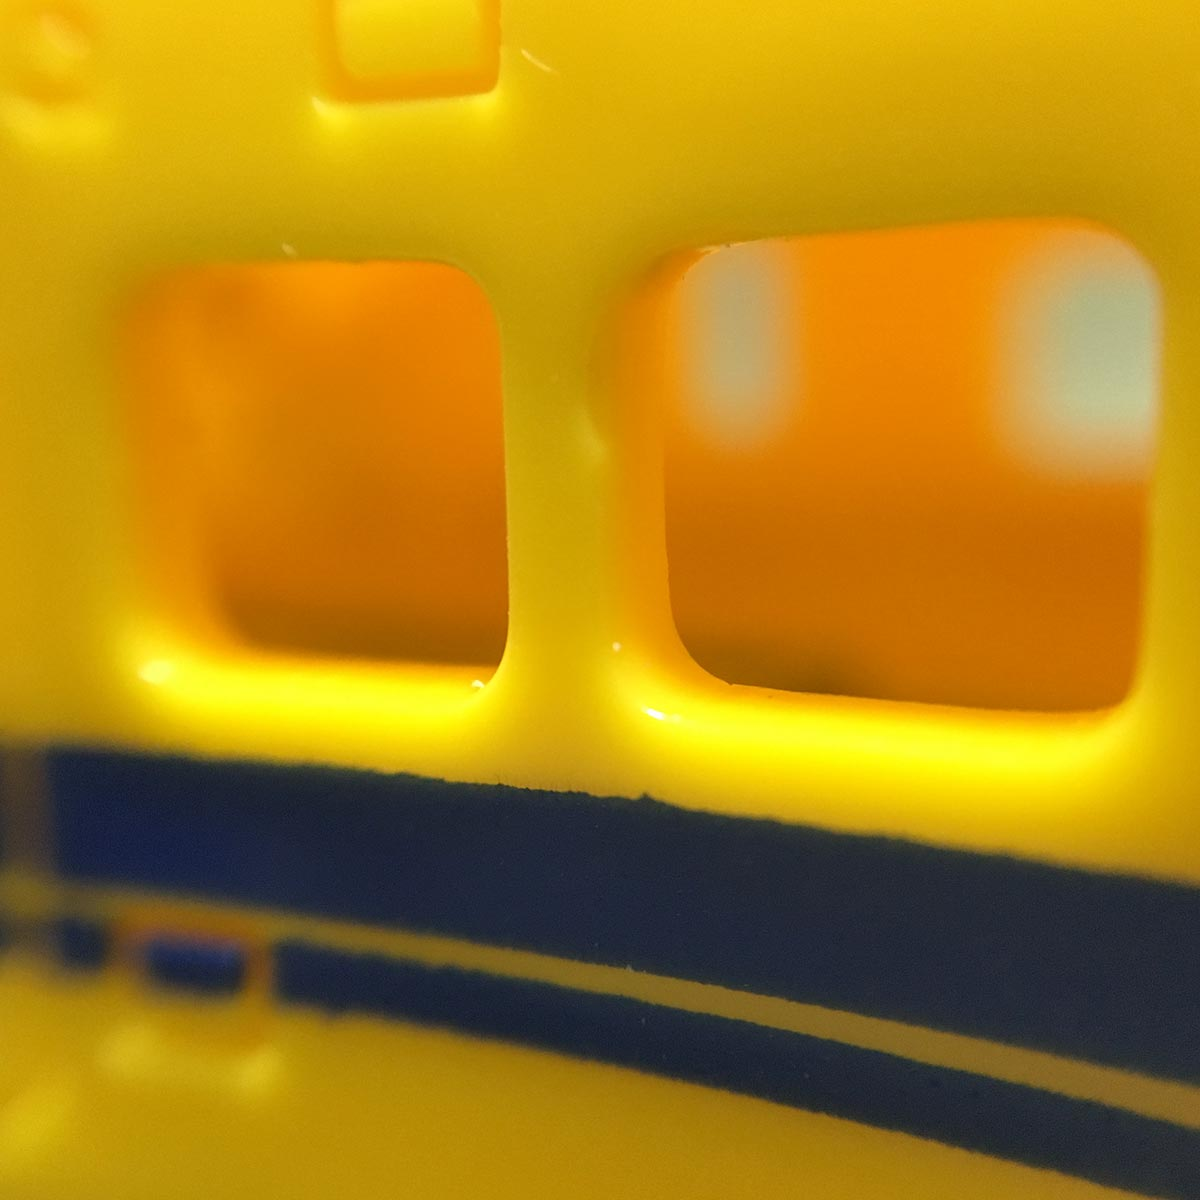 Doctor Yellow Pencil Sharpener - Windows close up